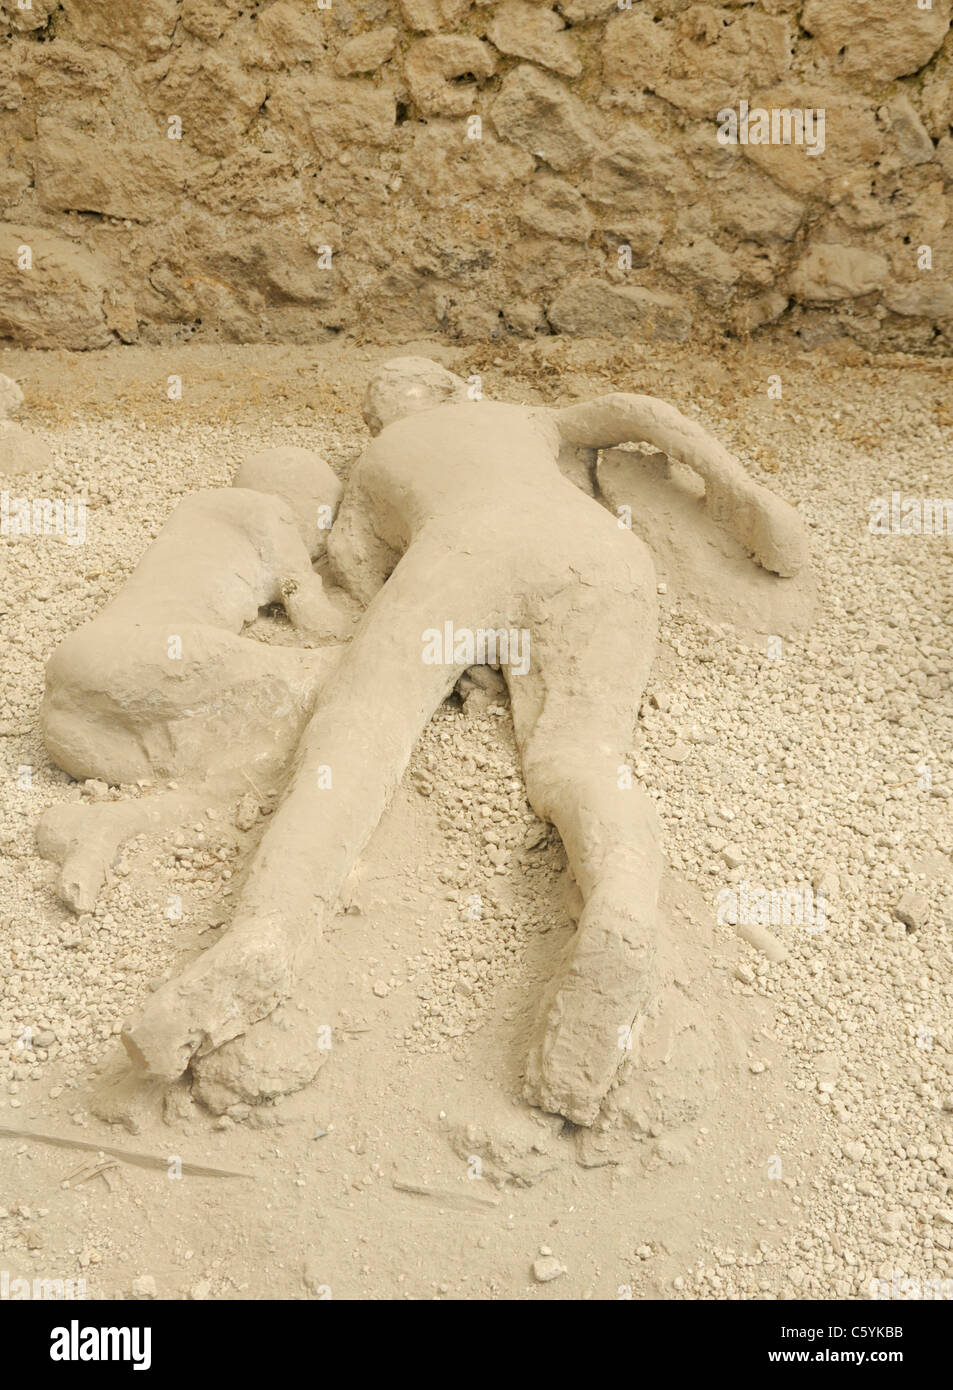 Pompeii victims, plaster casts, Garden of the Fugitives Stock Photo